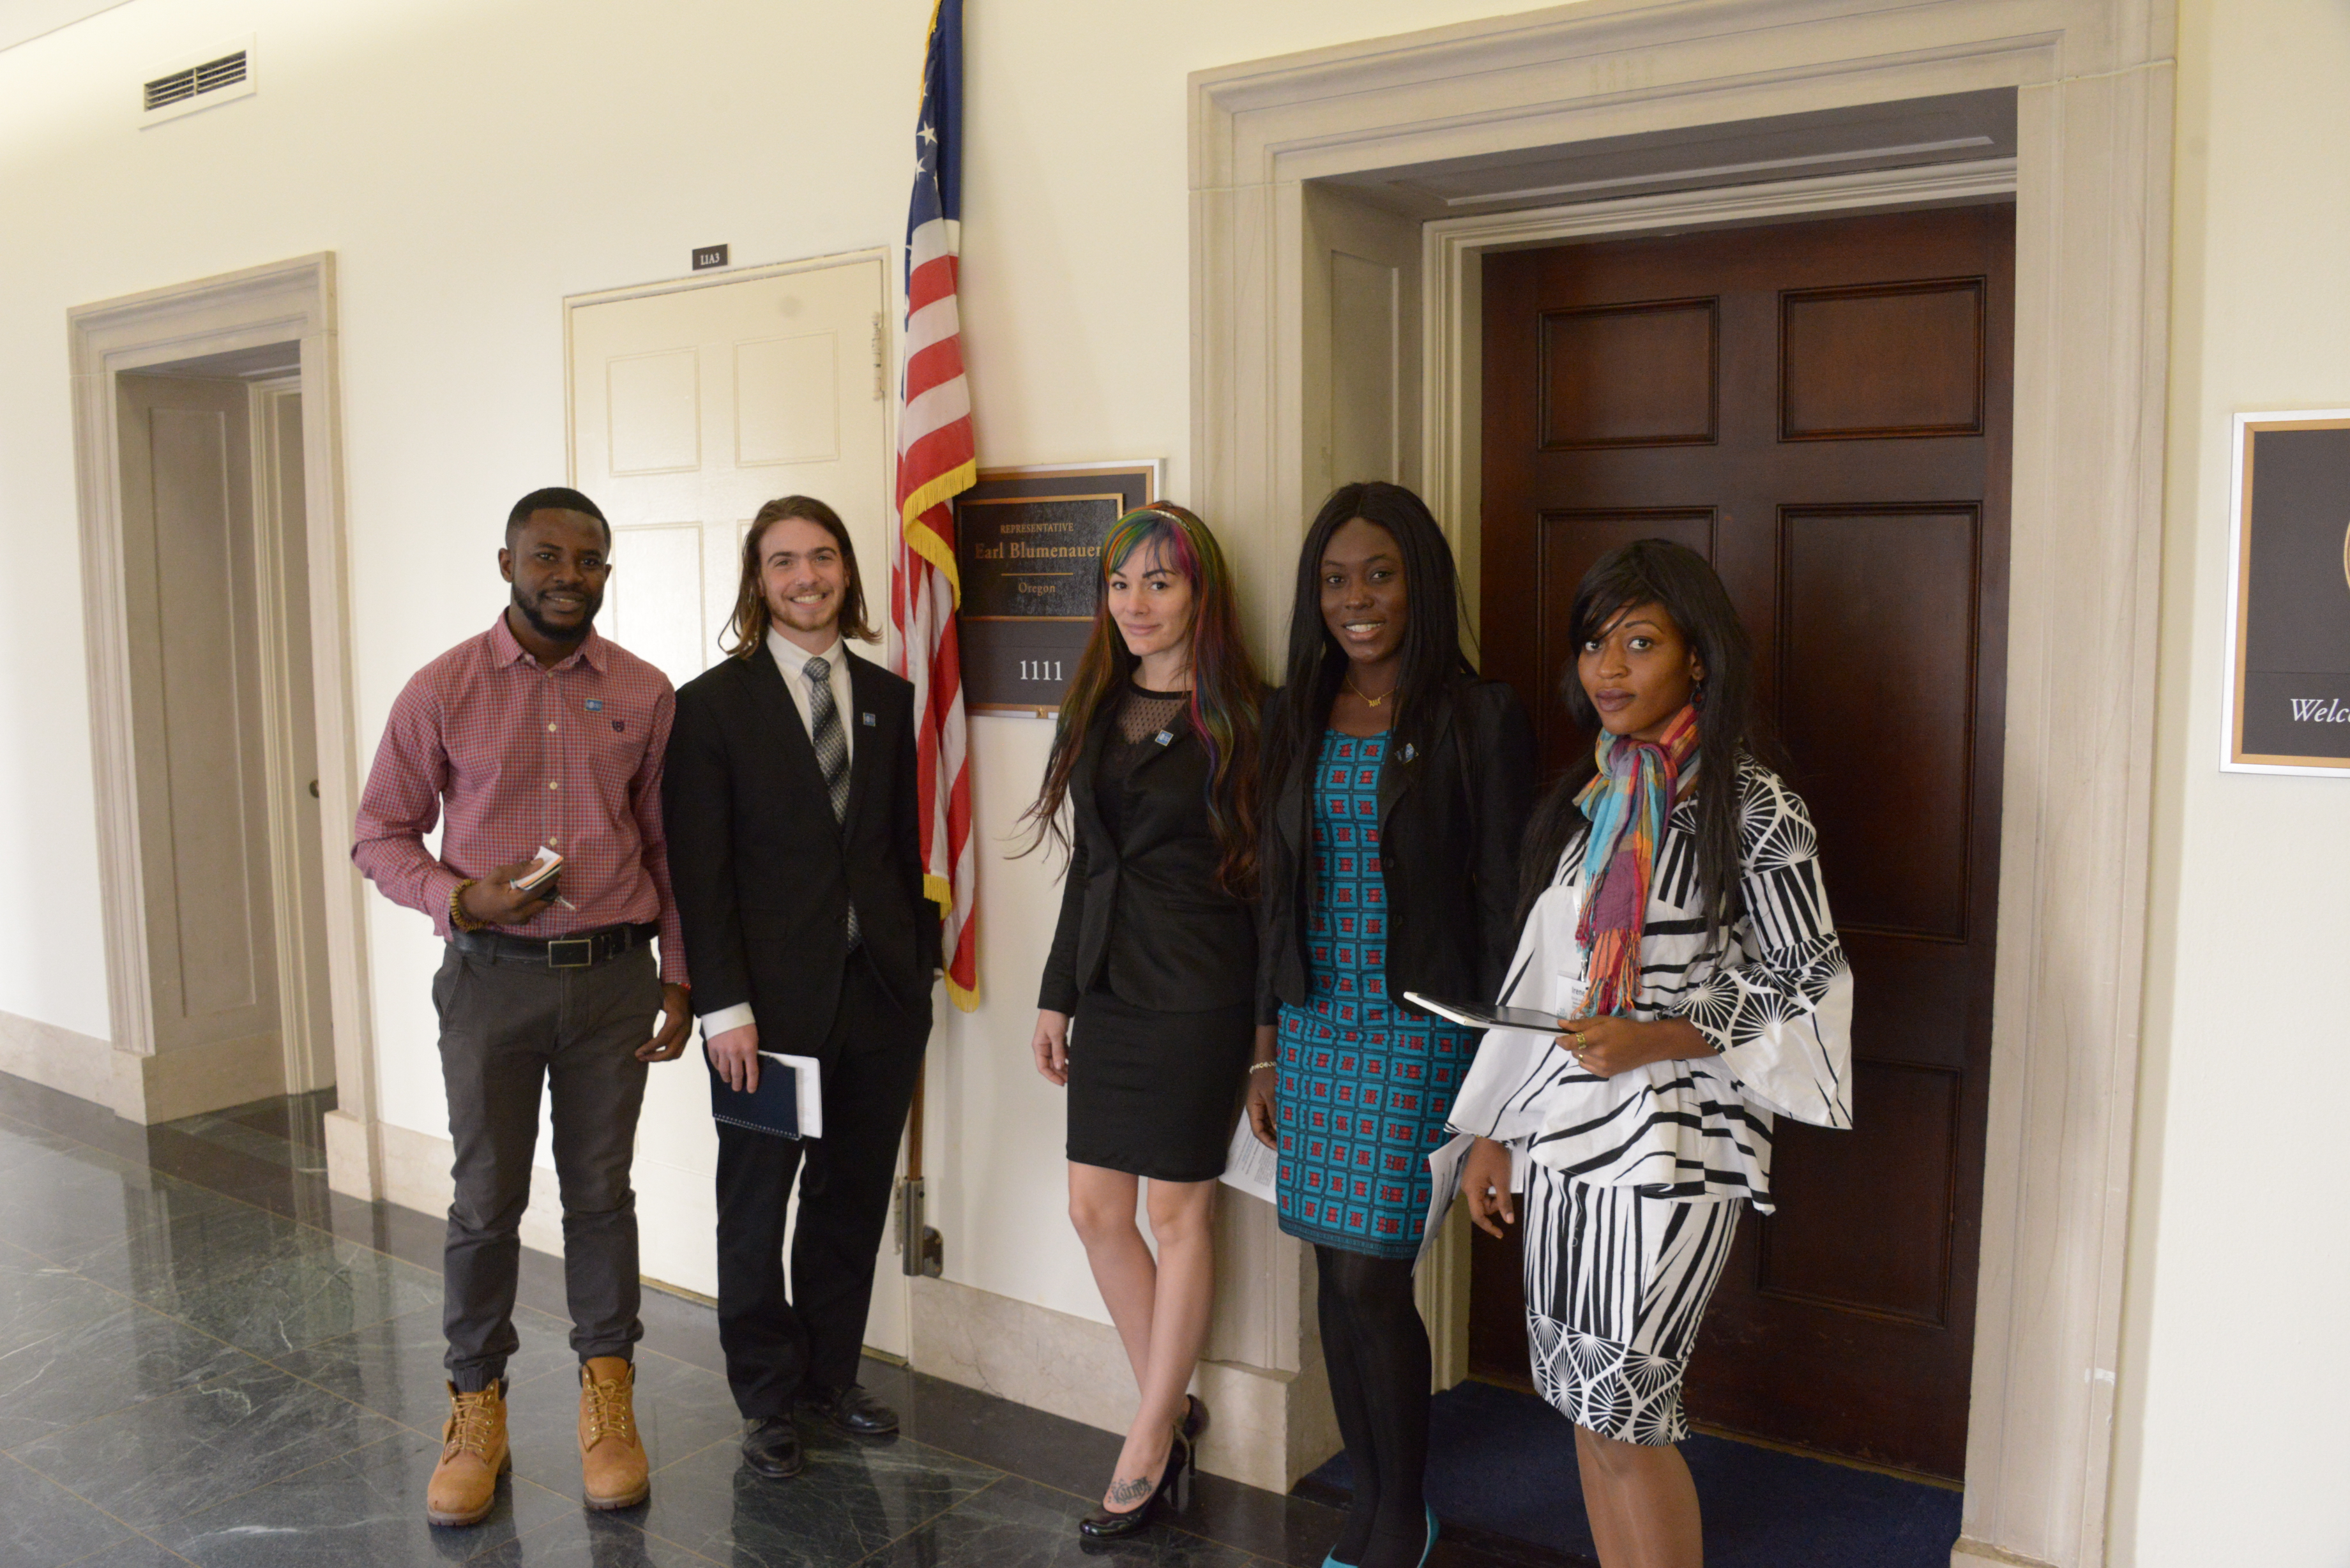 SSDPers during our 2018 lobby day in front of Congressman Blumenauer's office